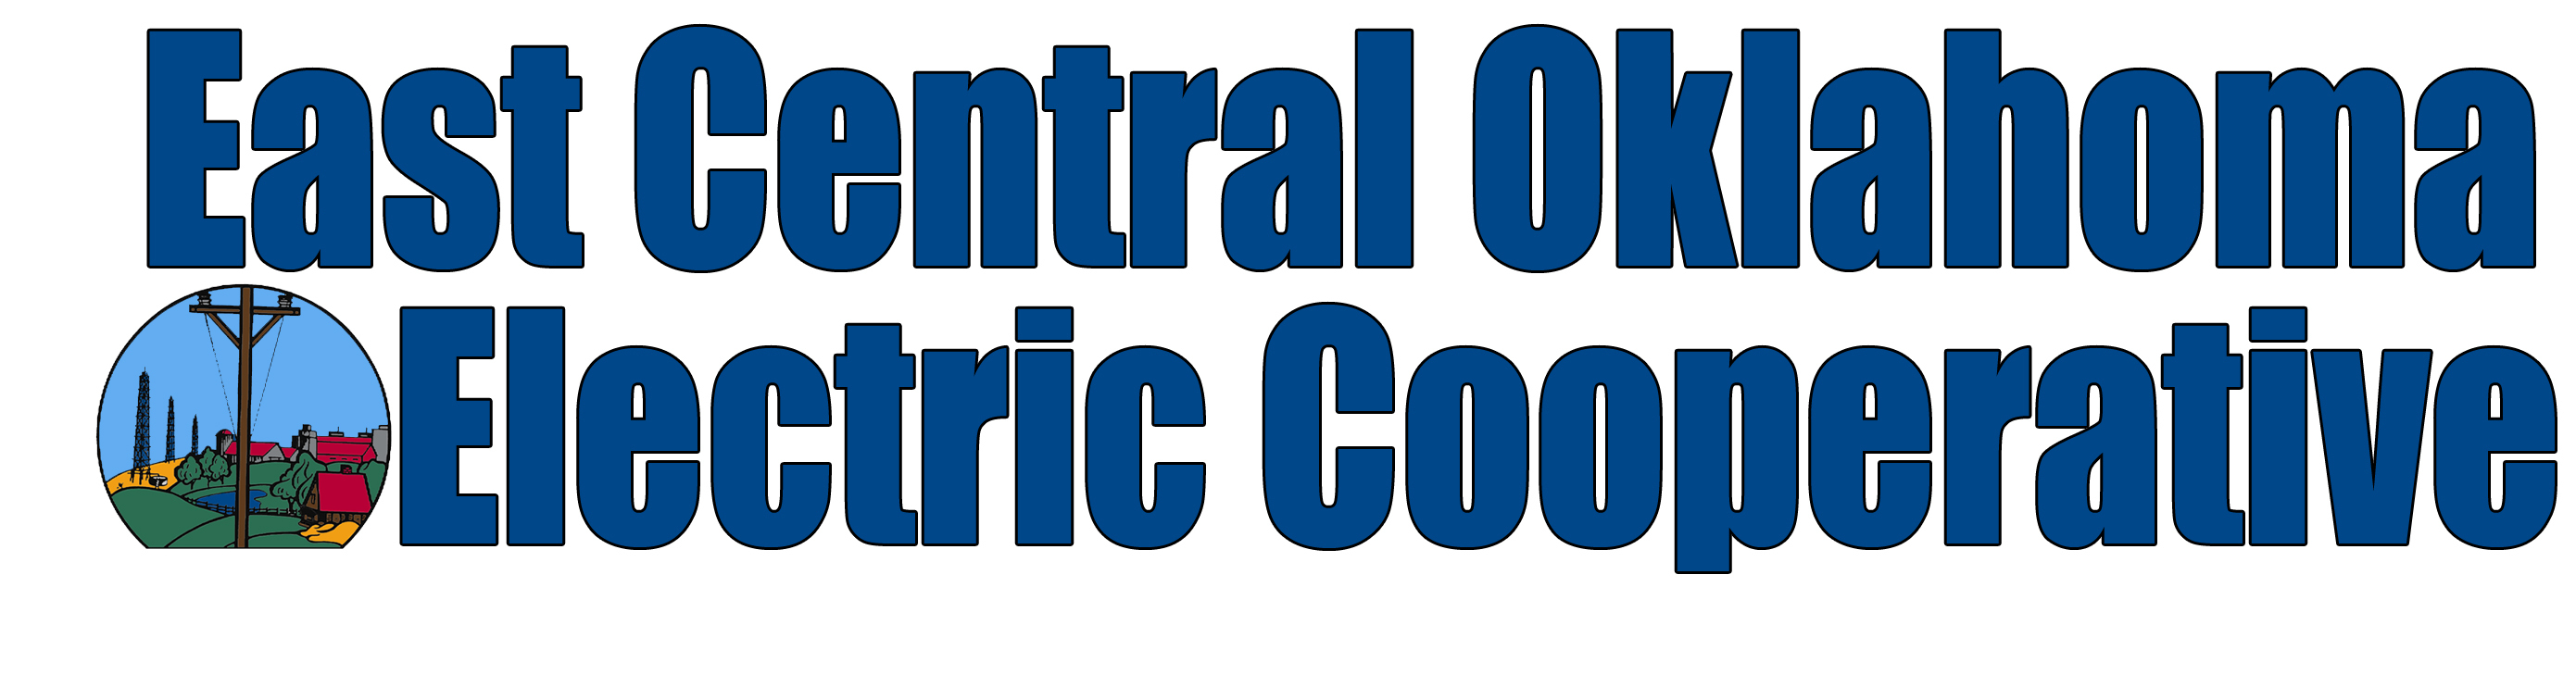 East Central Oklahoma Electric Cooperative